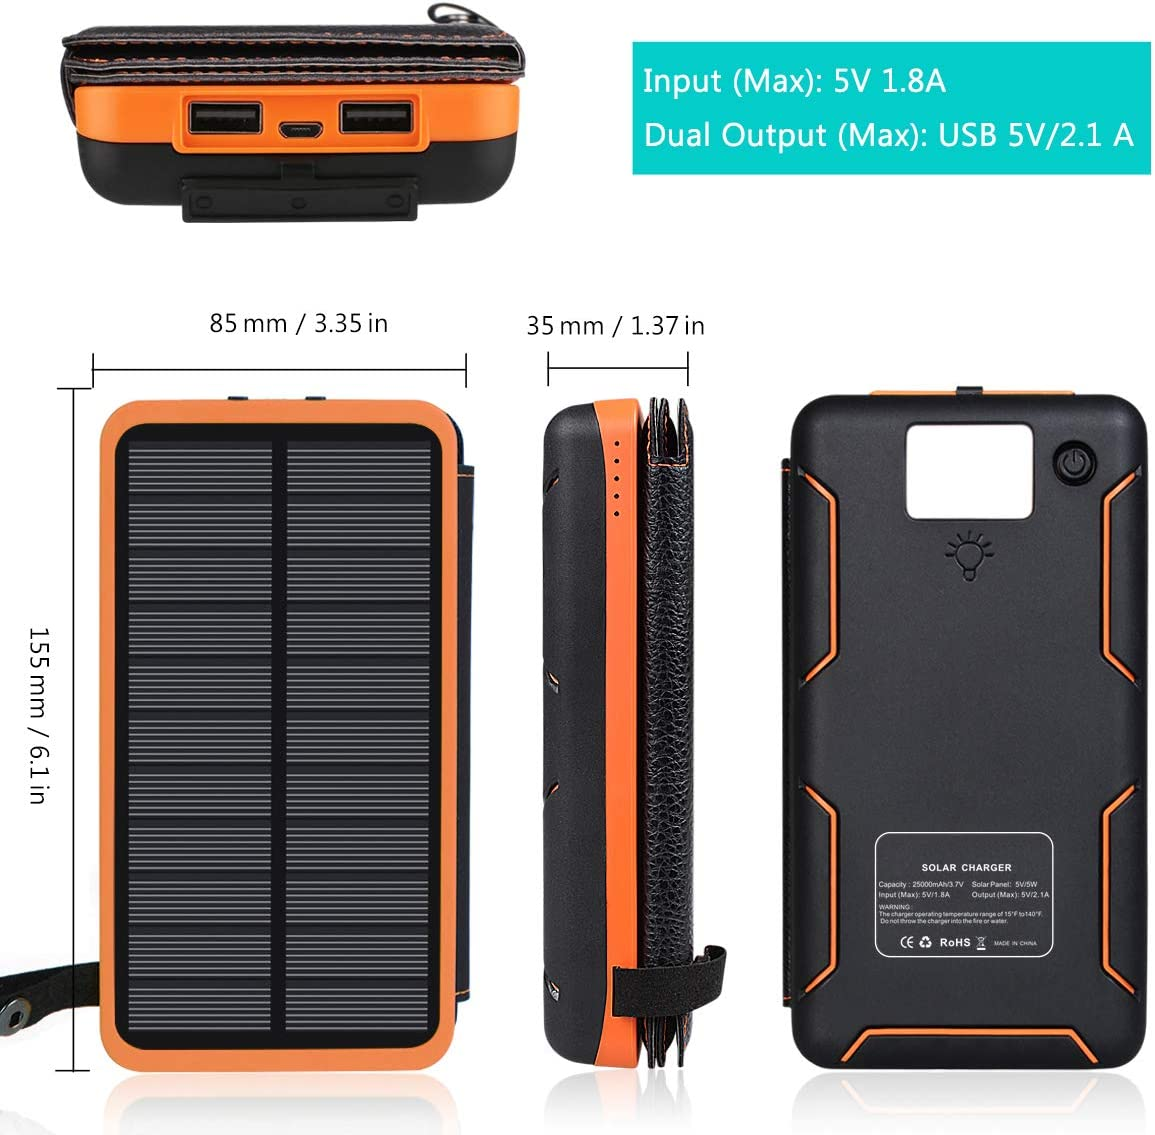 ADDTOP Solar Charger 25000mAh Portable Solar Power Bank with Dual 2.1A Outputs Outdoor External Battery Pack Compatible Most Smart Phones, Tablets and More